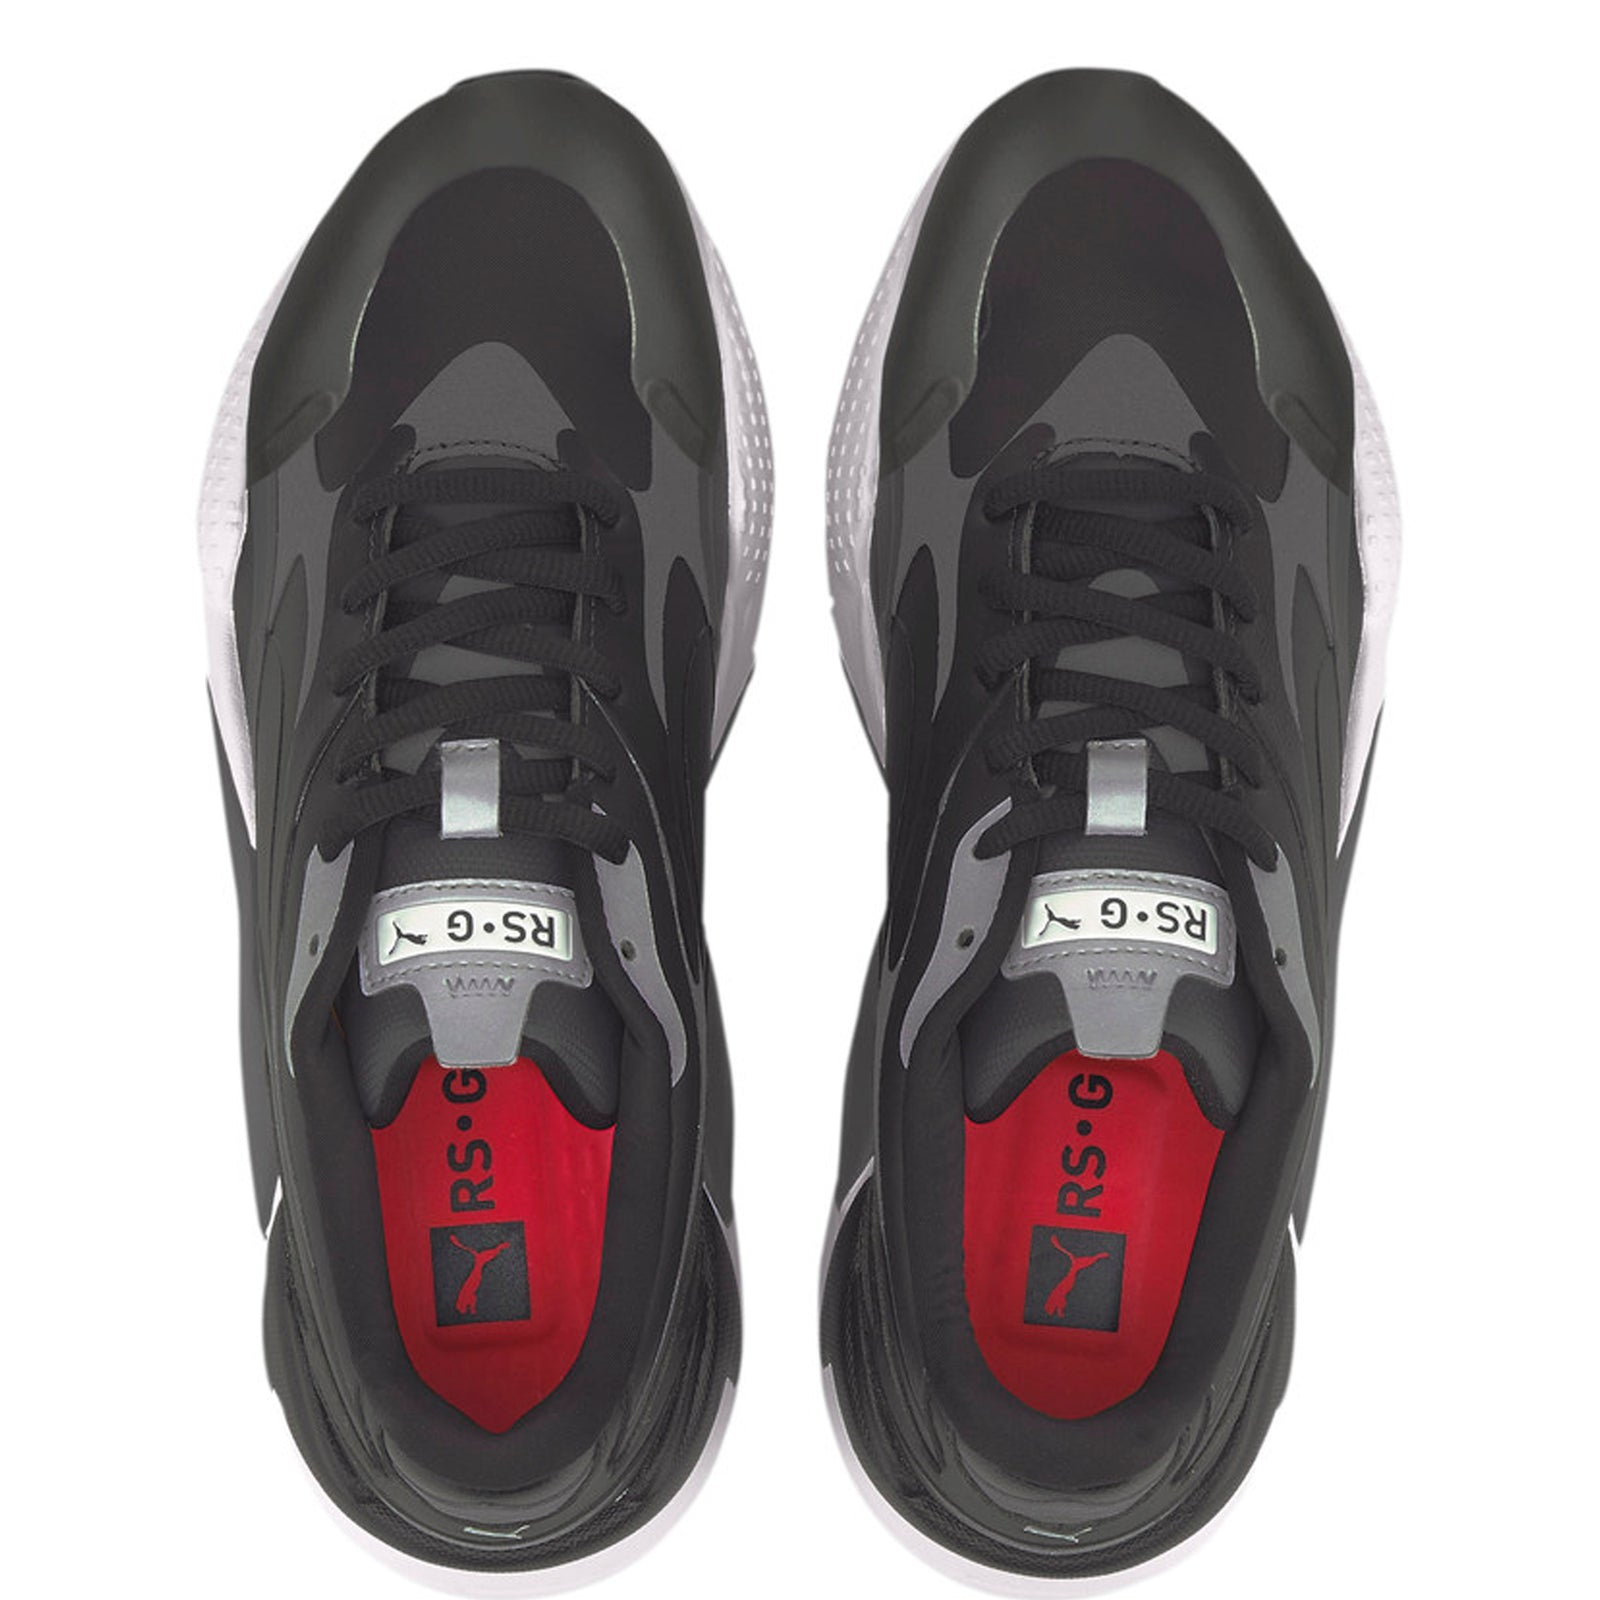 Puma RS-G Golf Shoes - Black/Dark Shadow